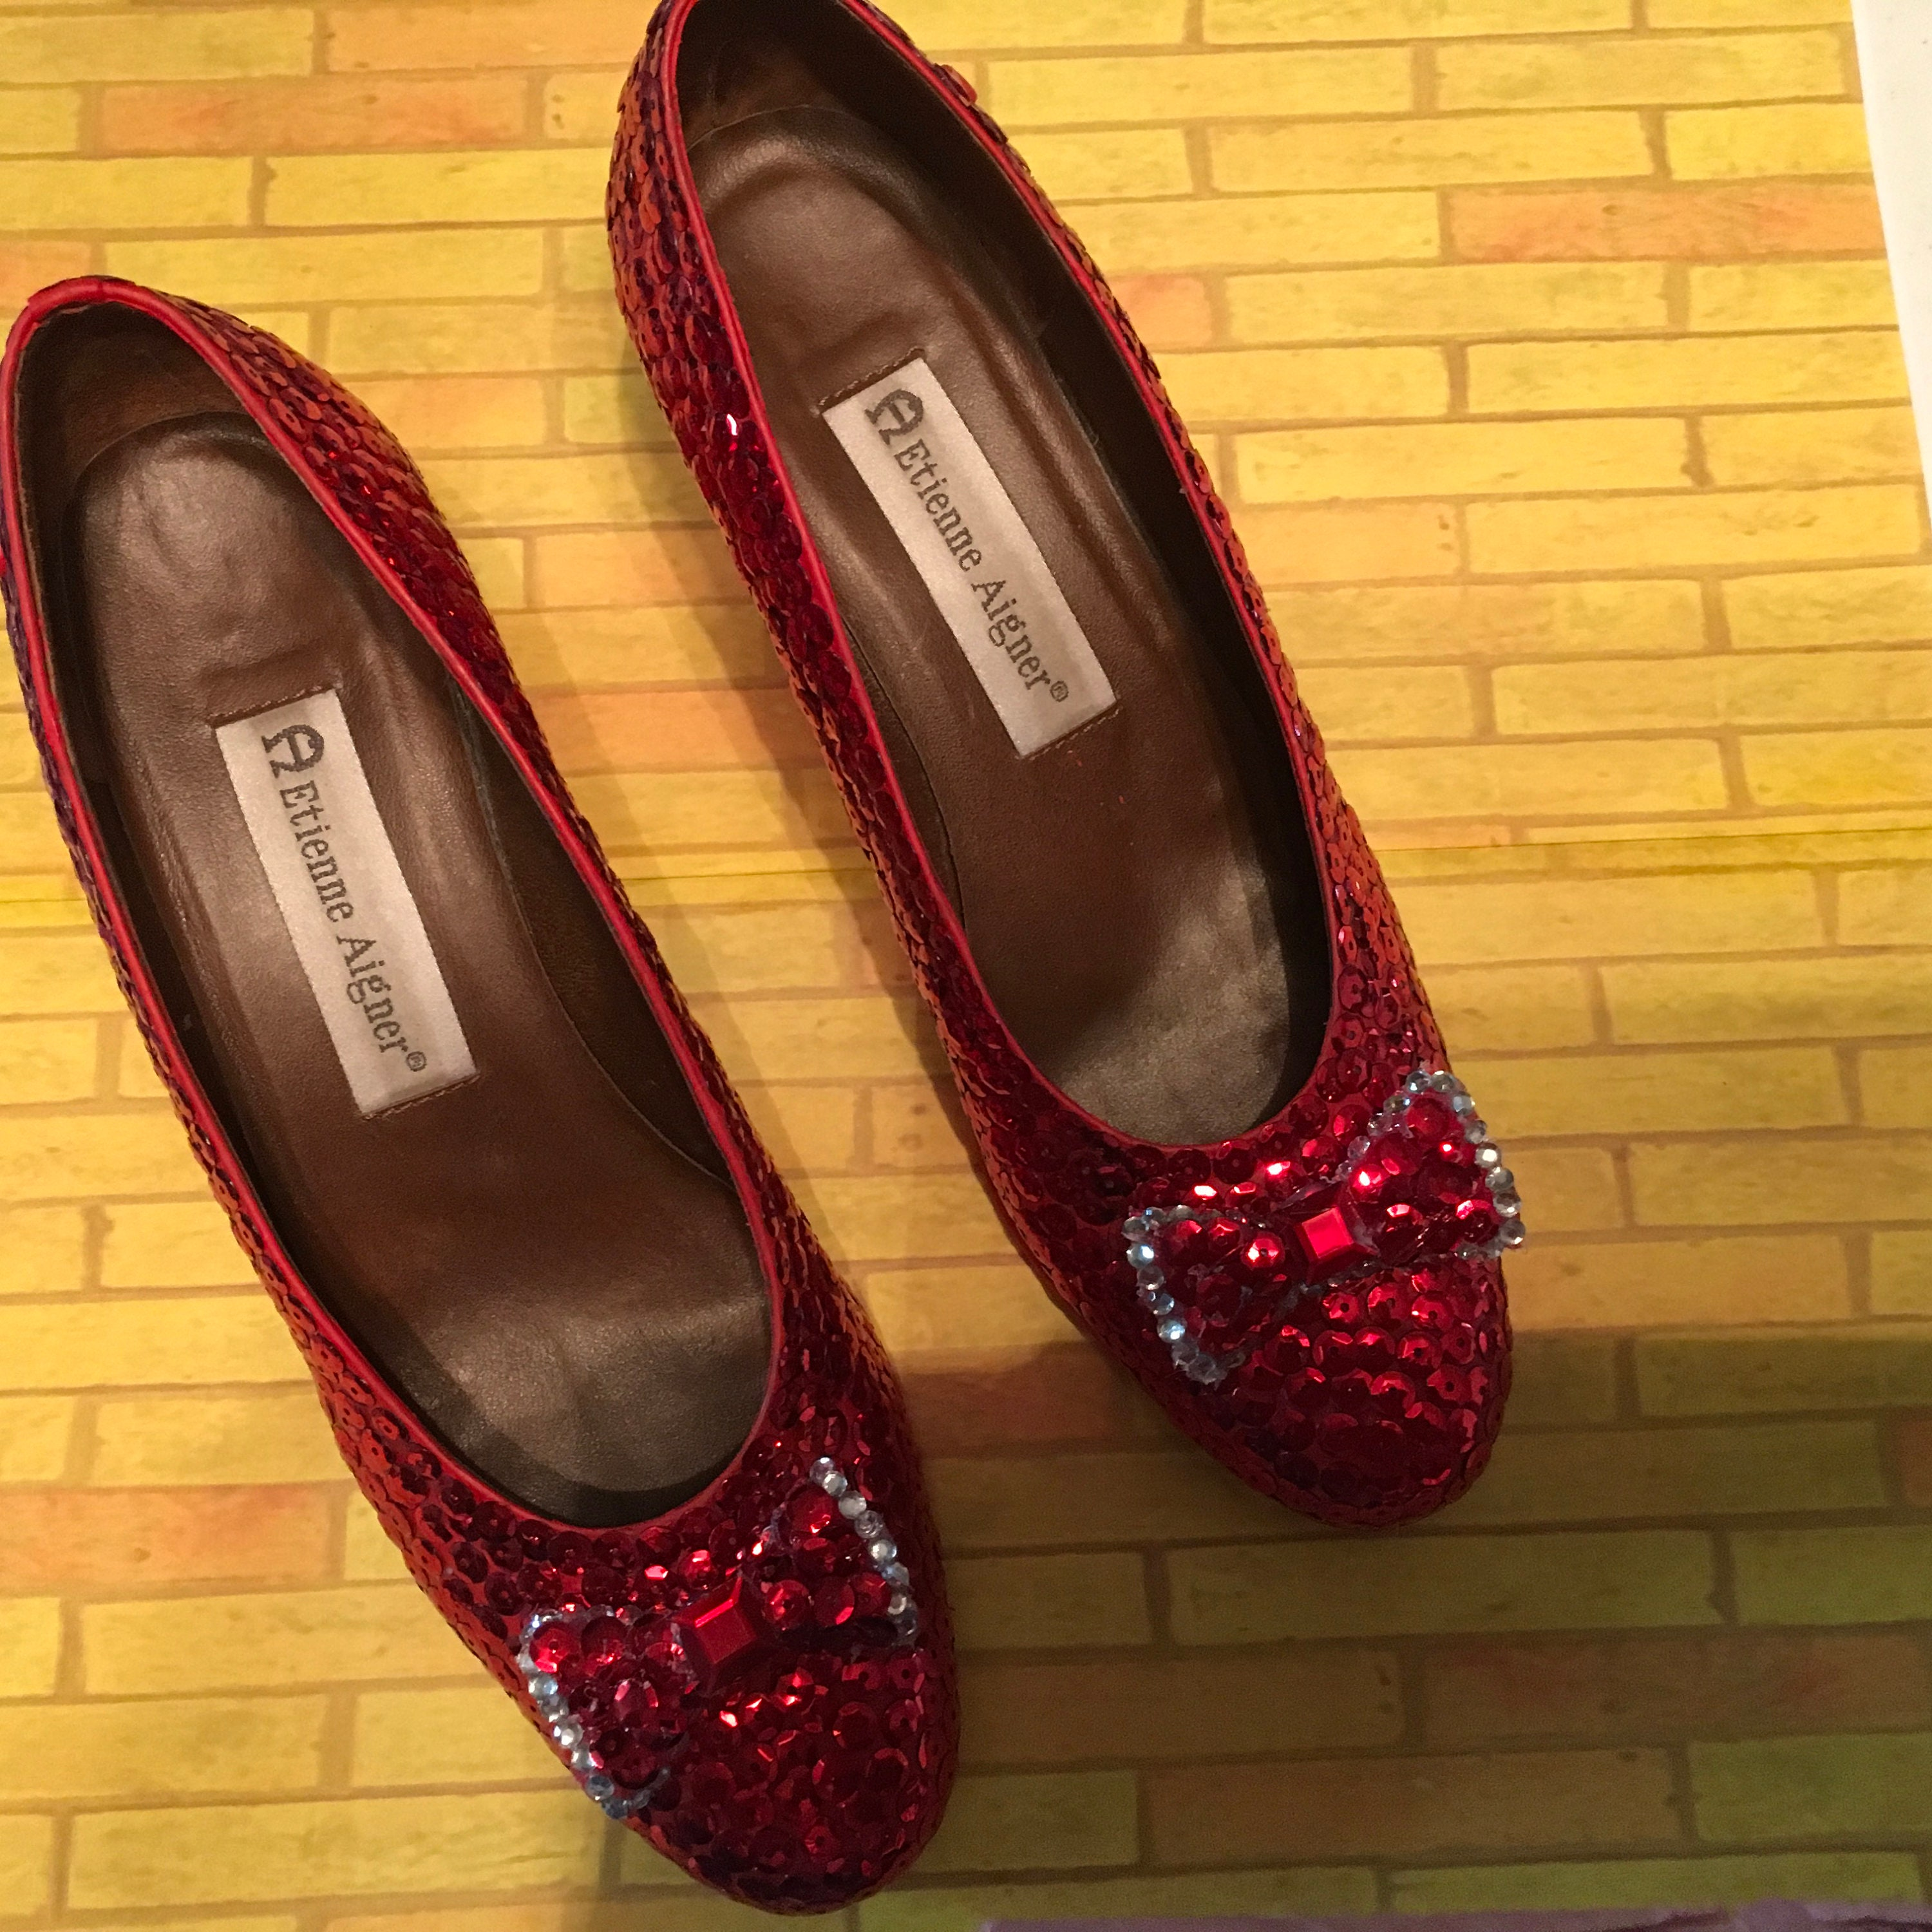 Ruby Narrow Red Shoes Size 6 Narrow Ruby 908eff